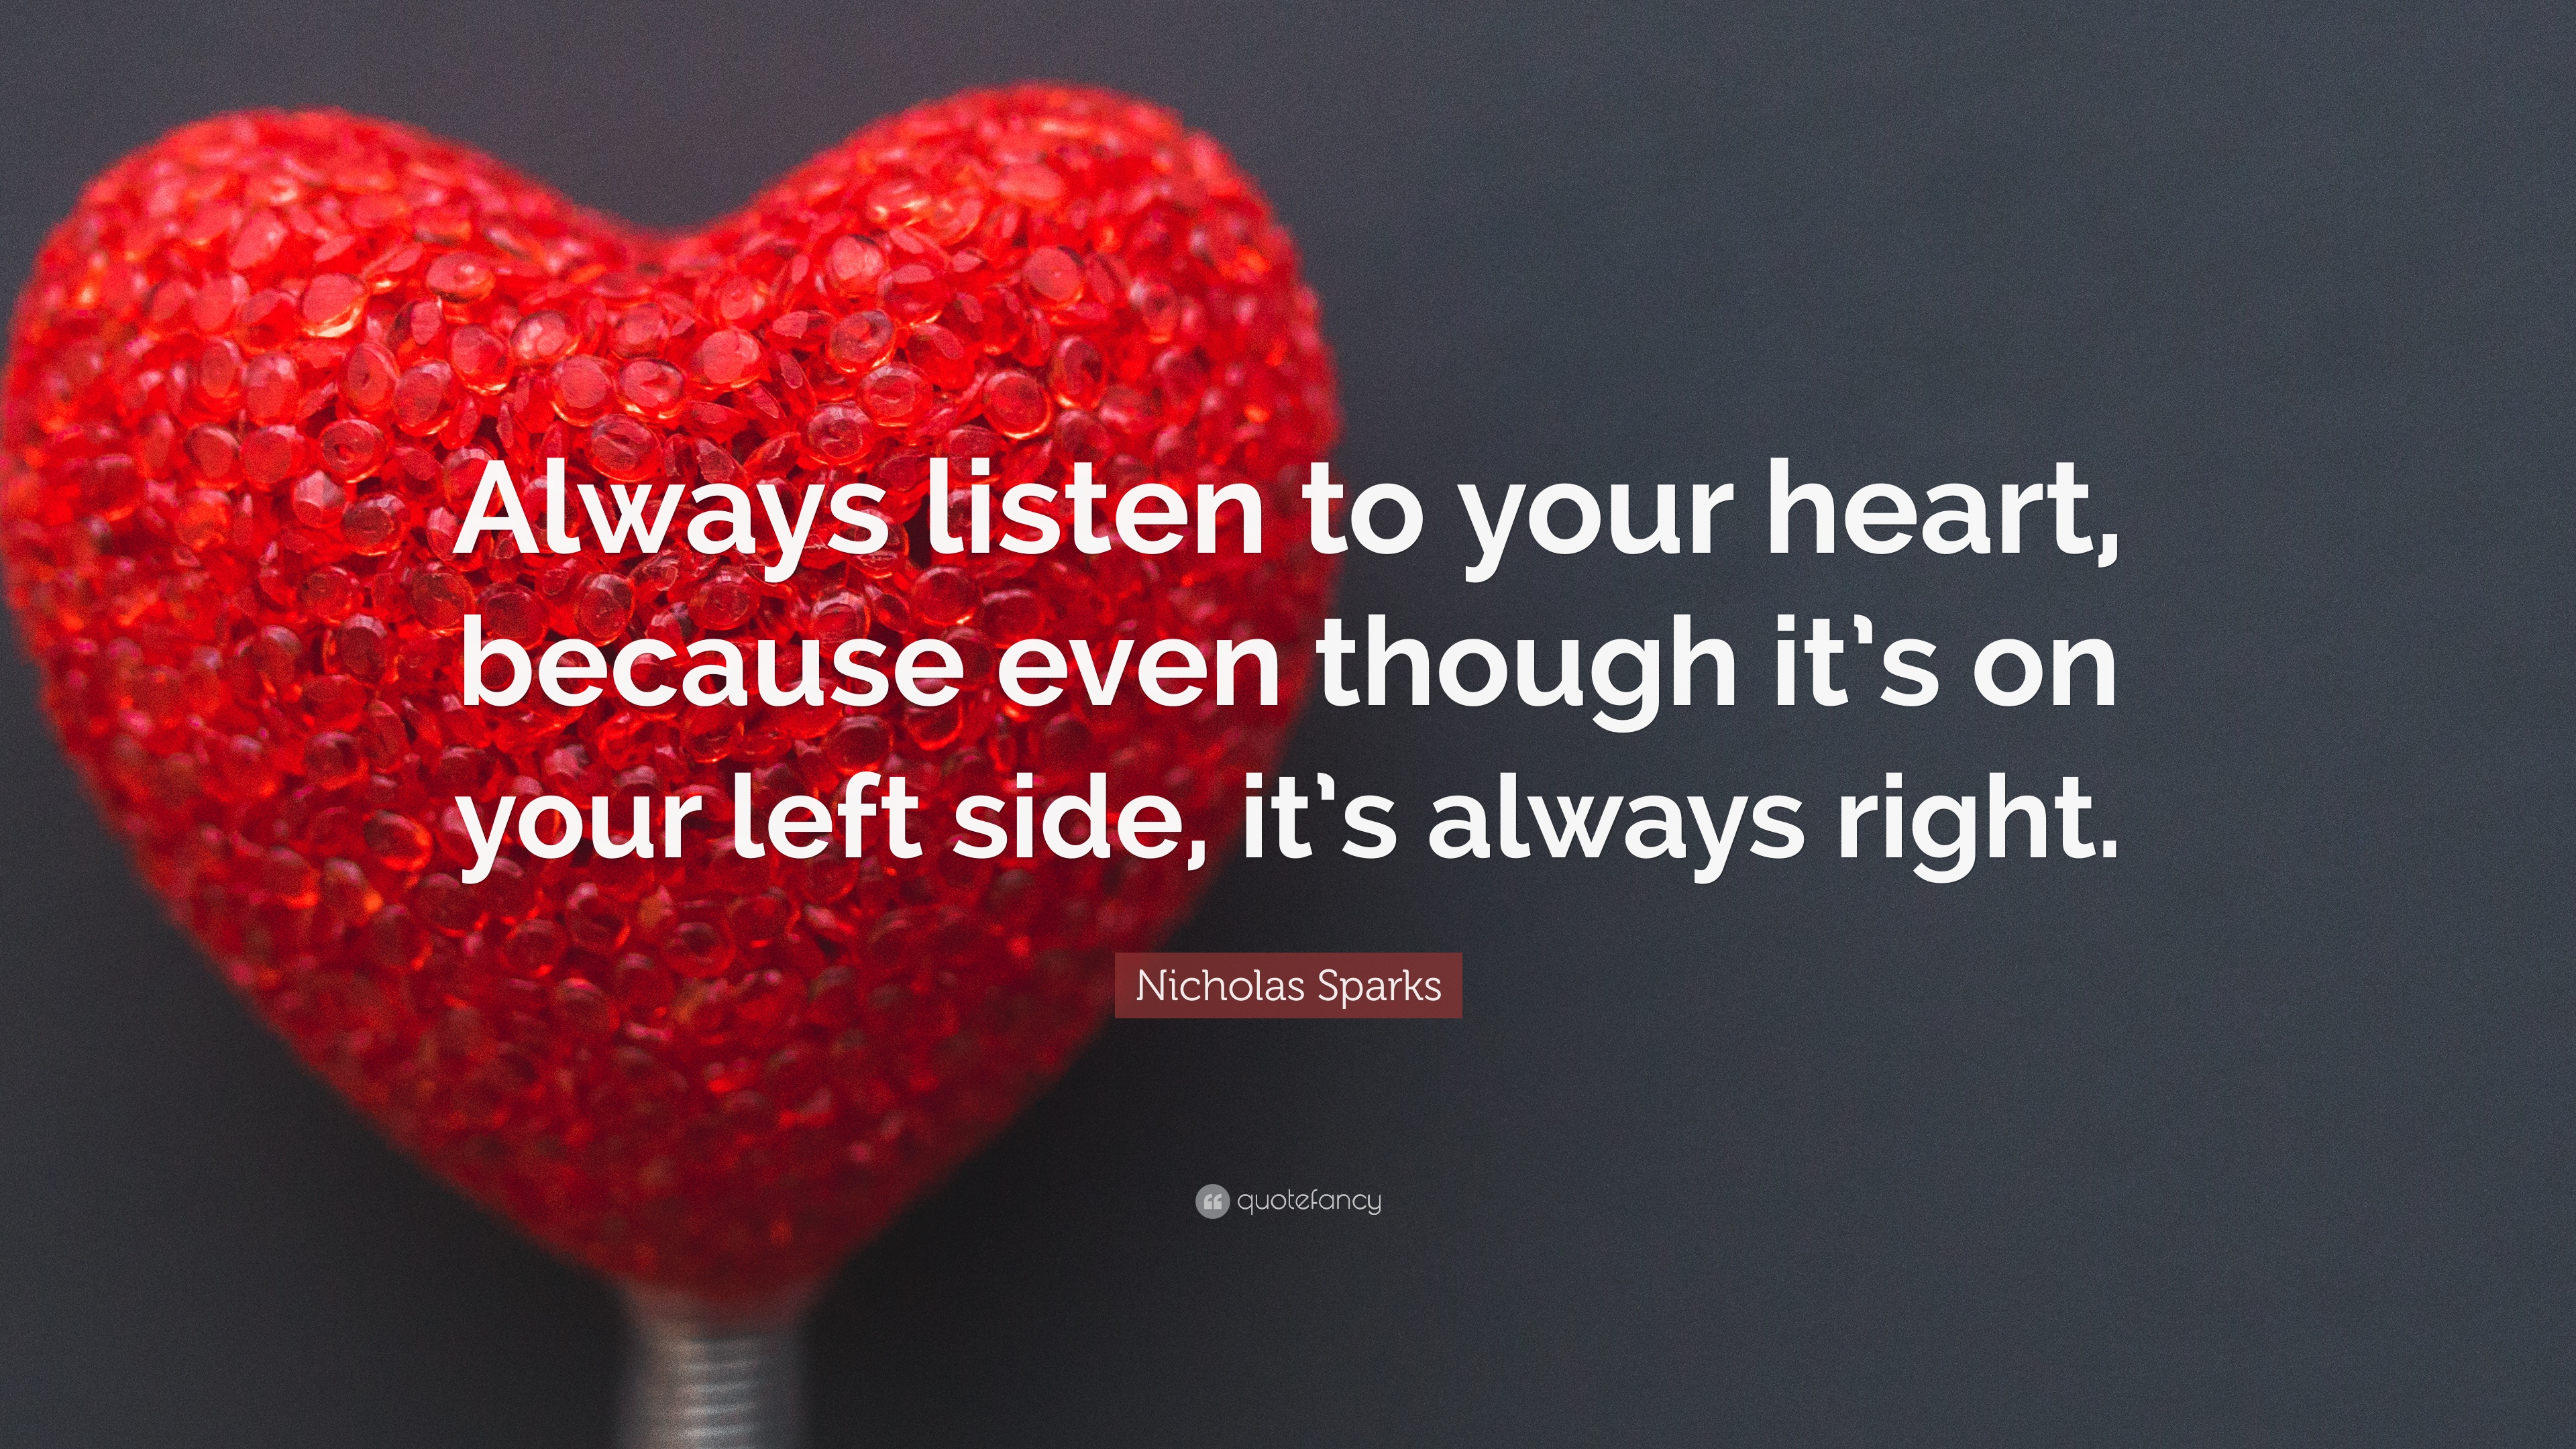 Beau Nicholas Sparks Quote: U201cAlways Listen To Your Heart, Because Even Though  Itu0027s On